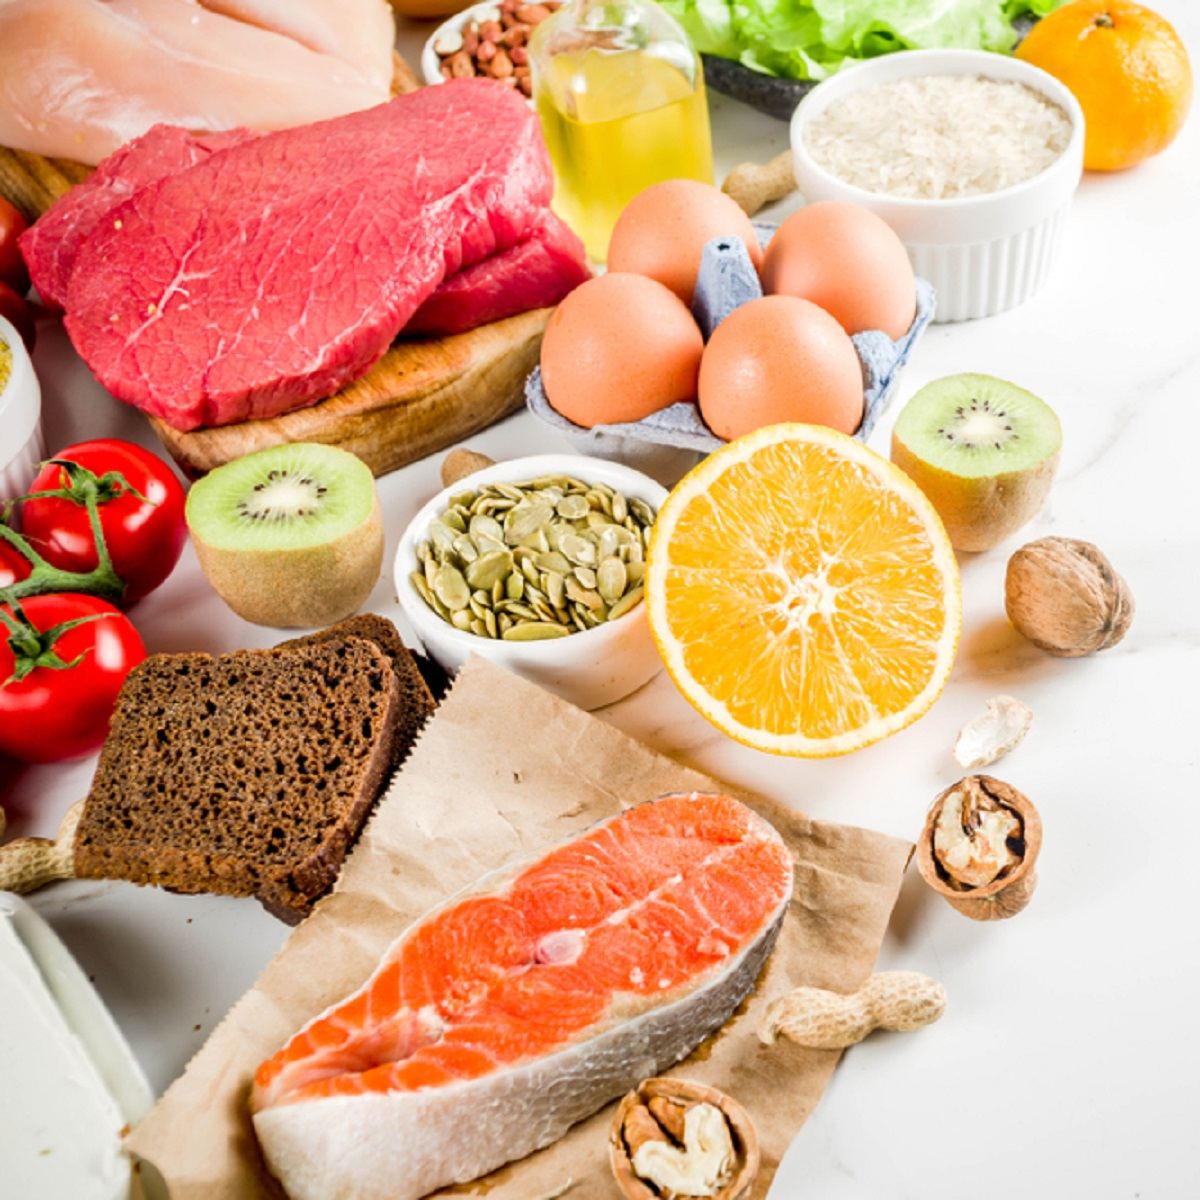 LOW FODMAP DIET – What are Low FODMAP Foods, How to Implement Low FODMAP Diet and What is Low FODMAP Diet For?